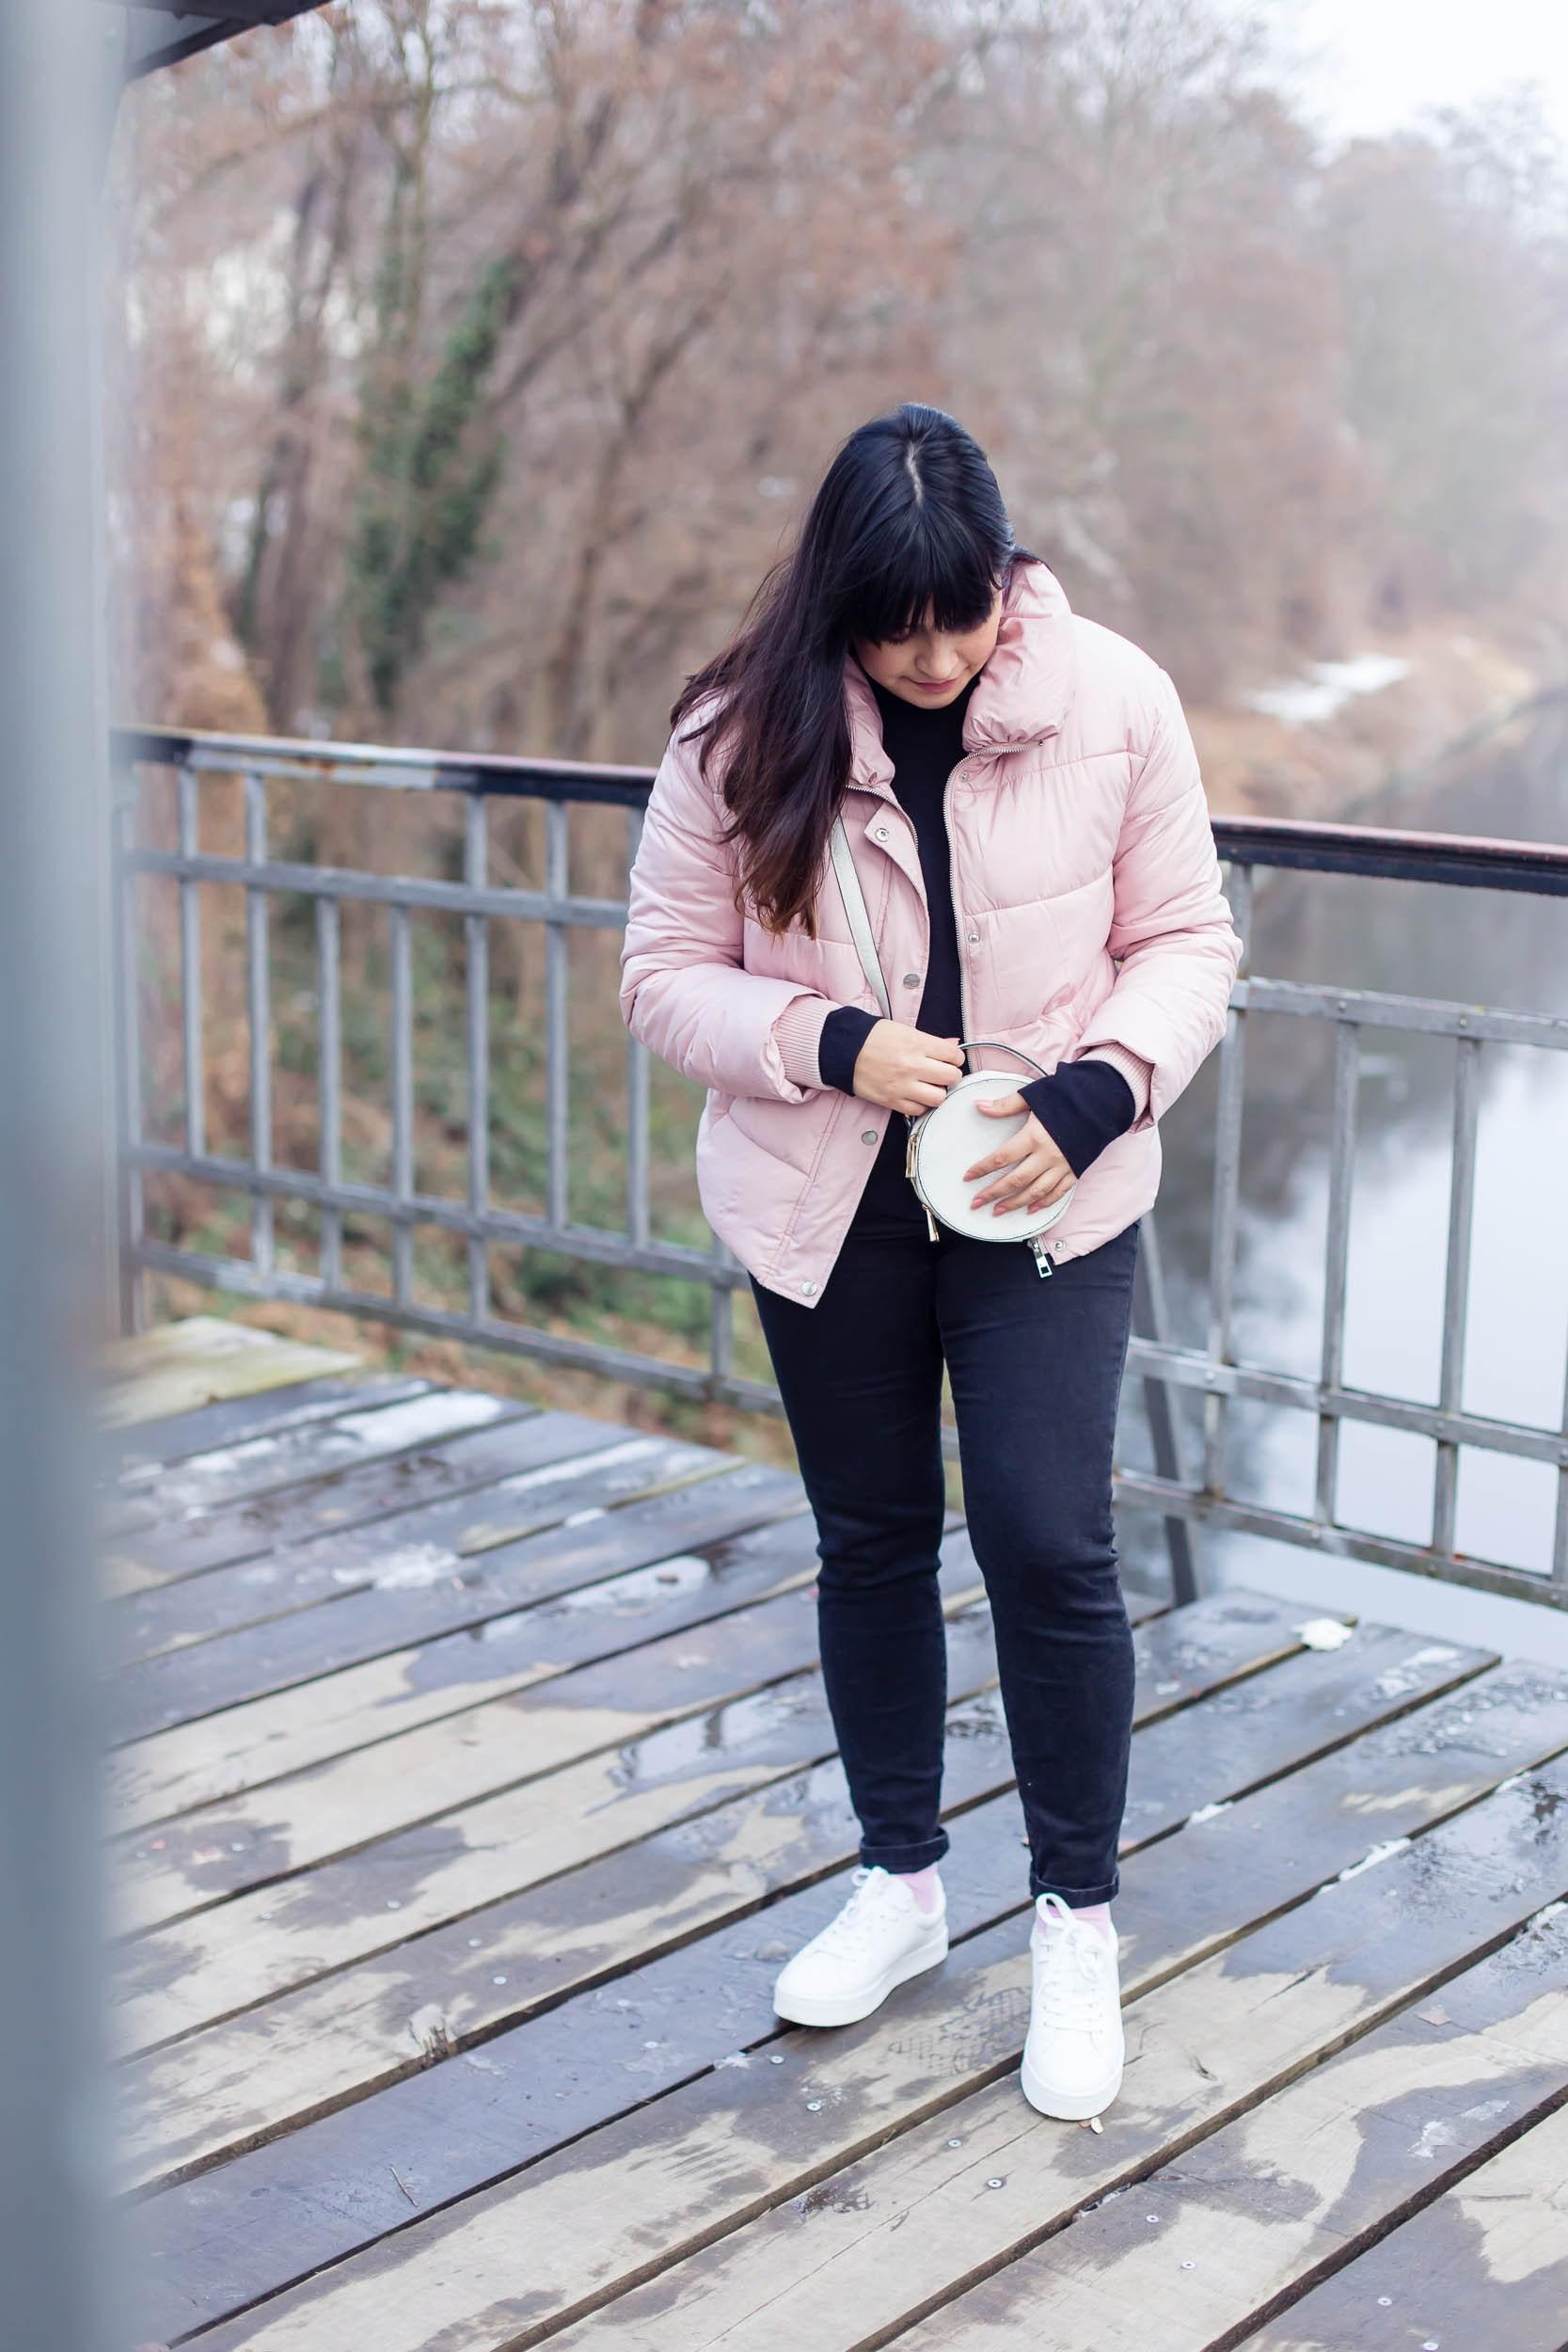 Wie gefällt euch der Look? #winteroutfit #ootd #fashion #outfit #rosa #pink #winter #style